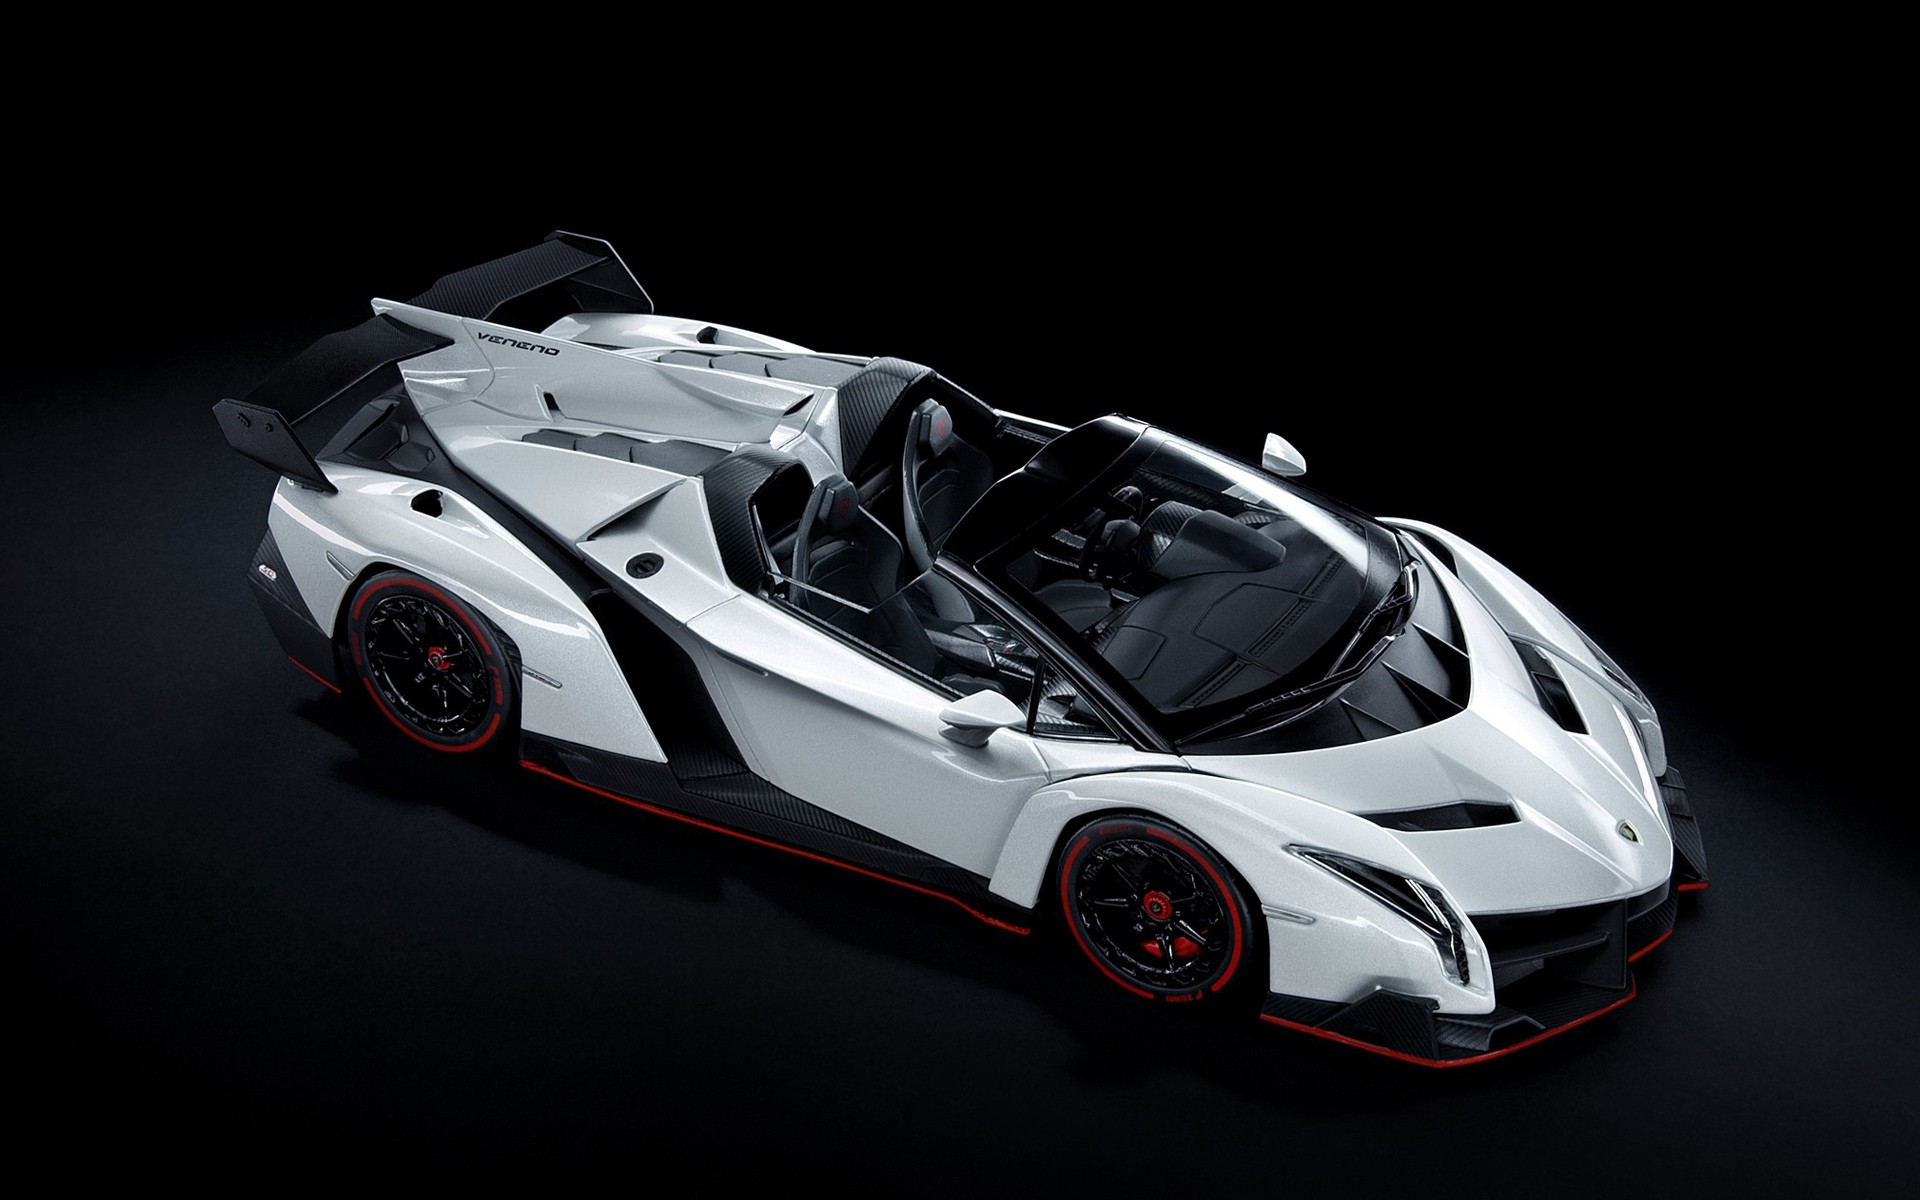 wallpaper of lamborghini veneno roadster, desktop picture & hd photo